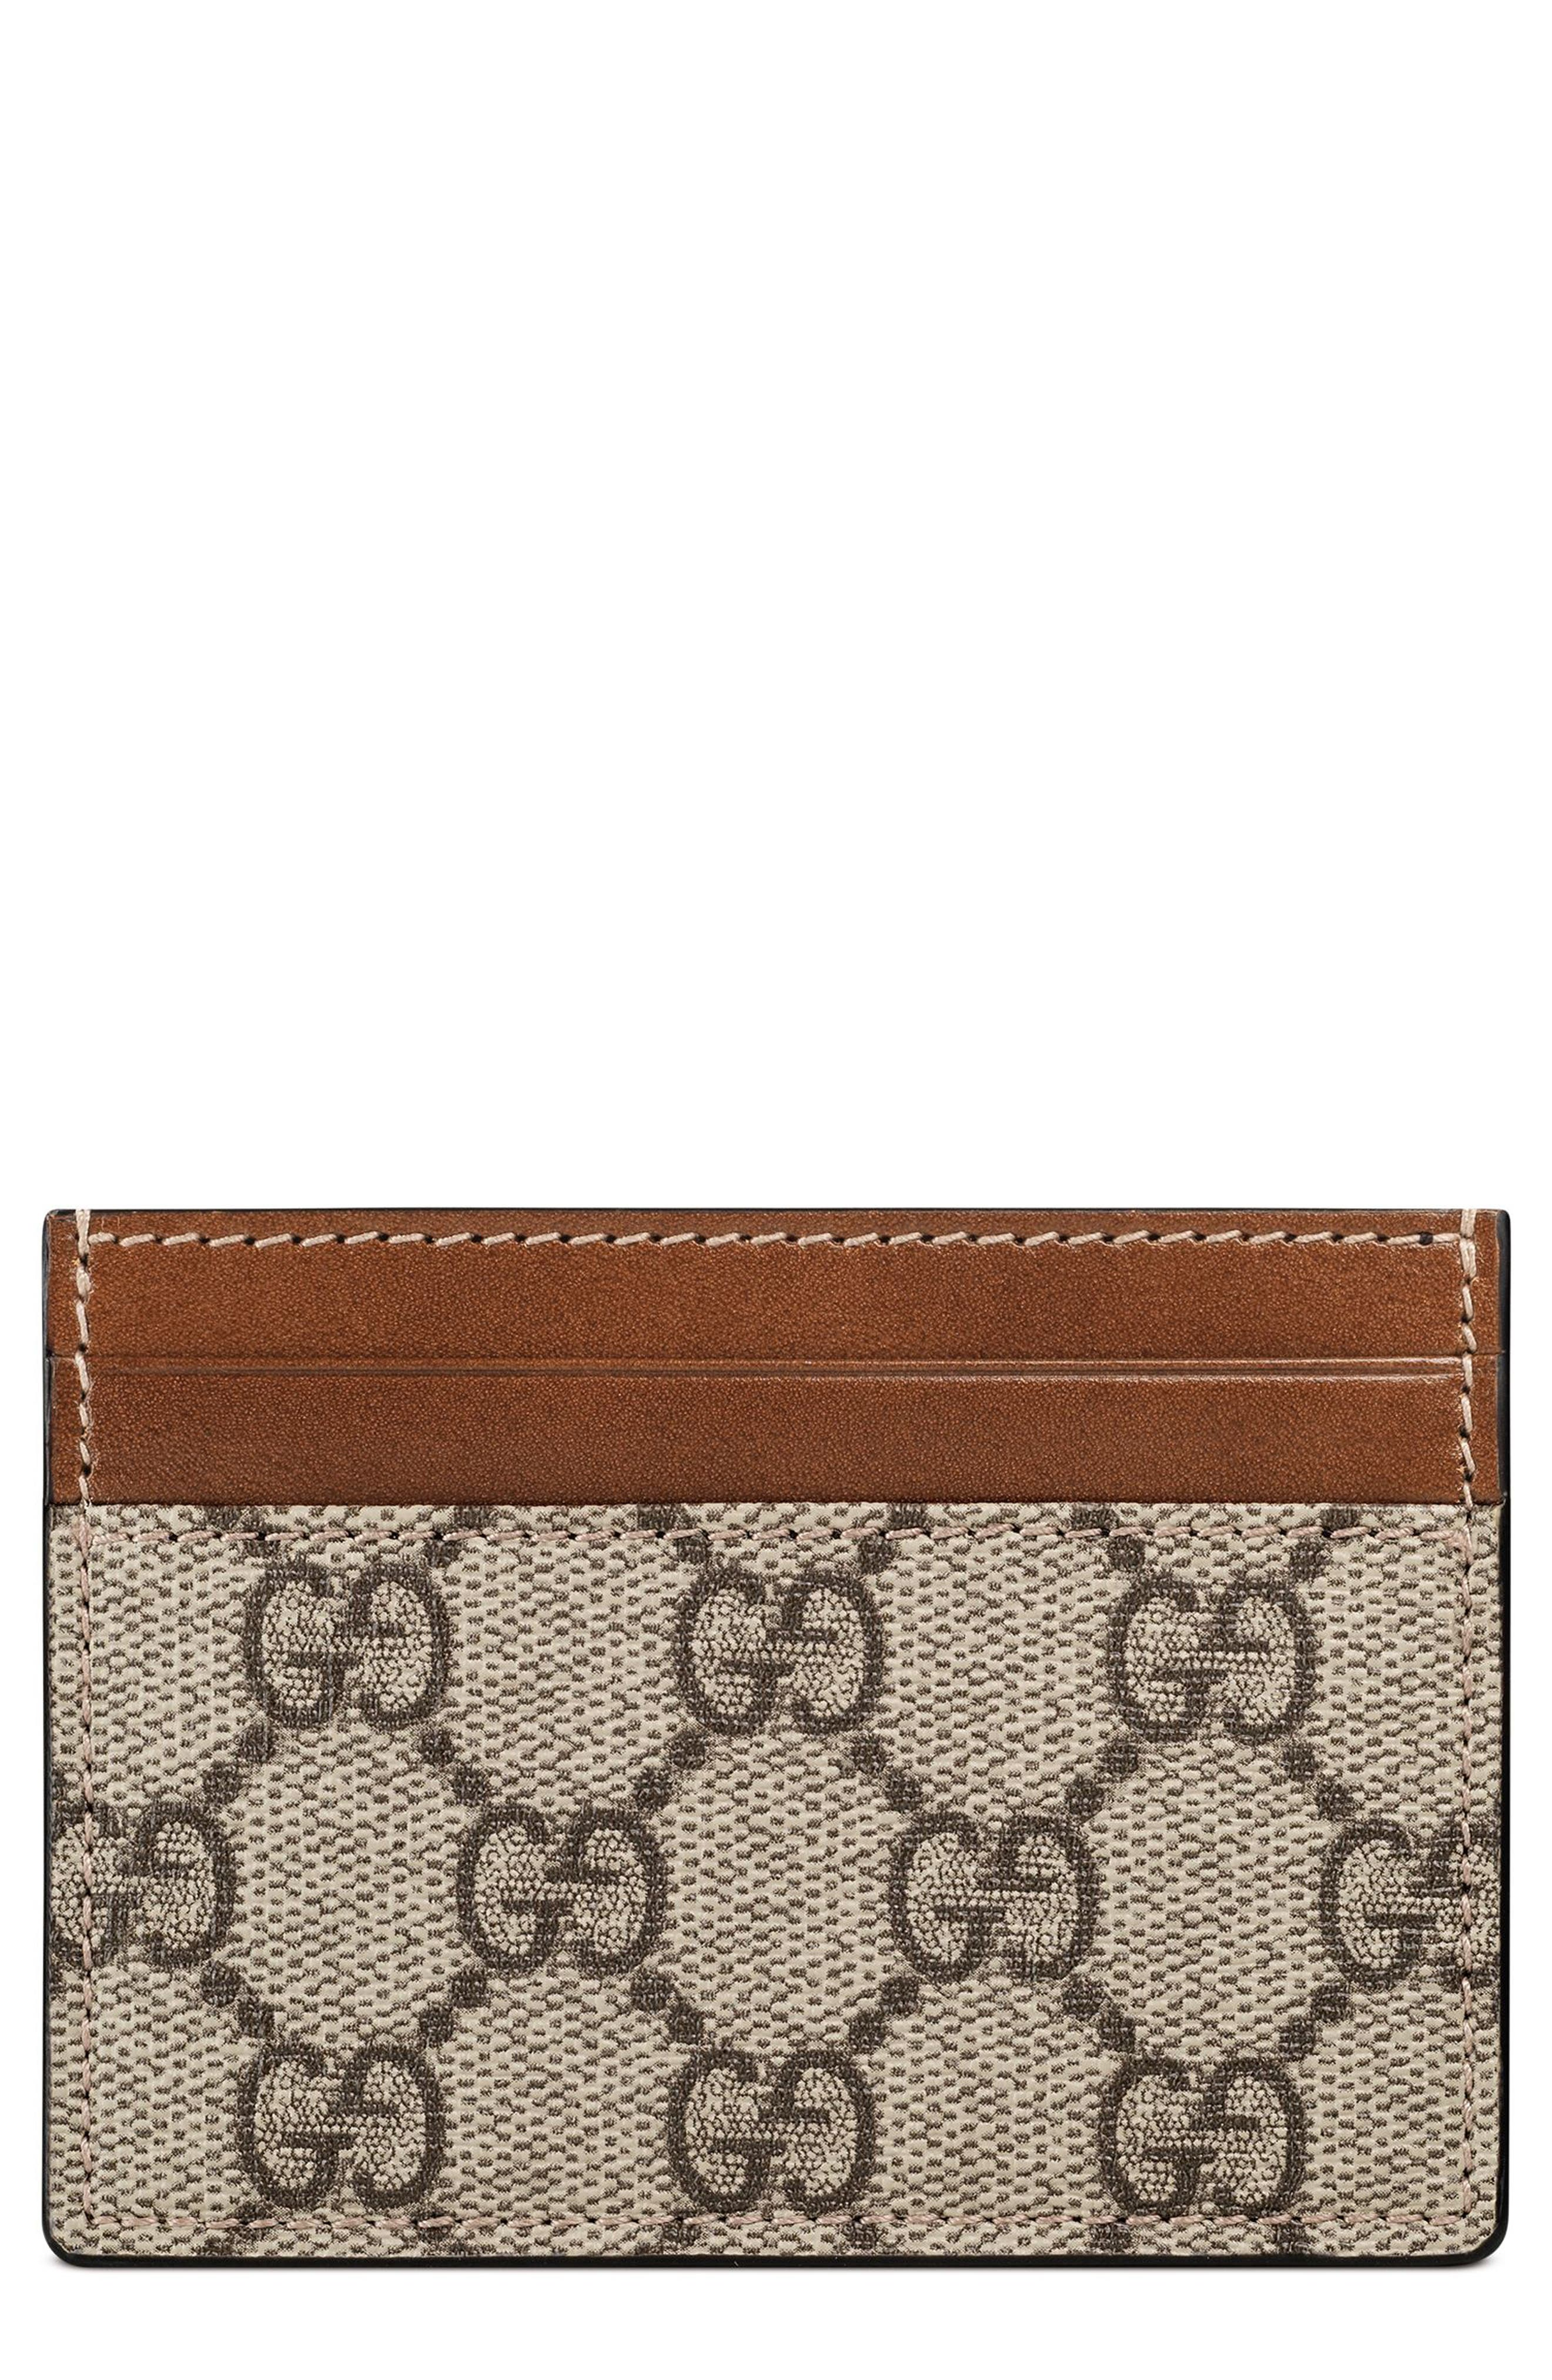 Linea GG Supreme Canvas Card Case,                             Main thumbnail 1, color,                             BEIGE EBONY/ CUIR